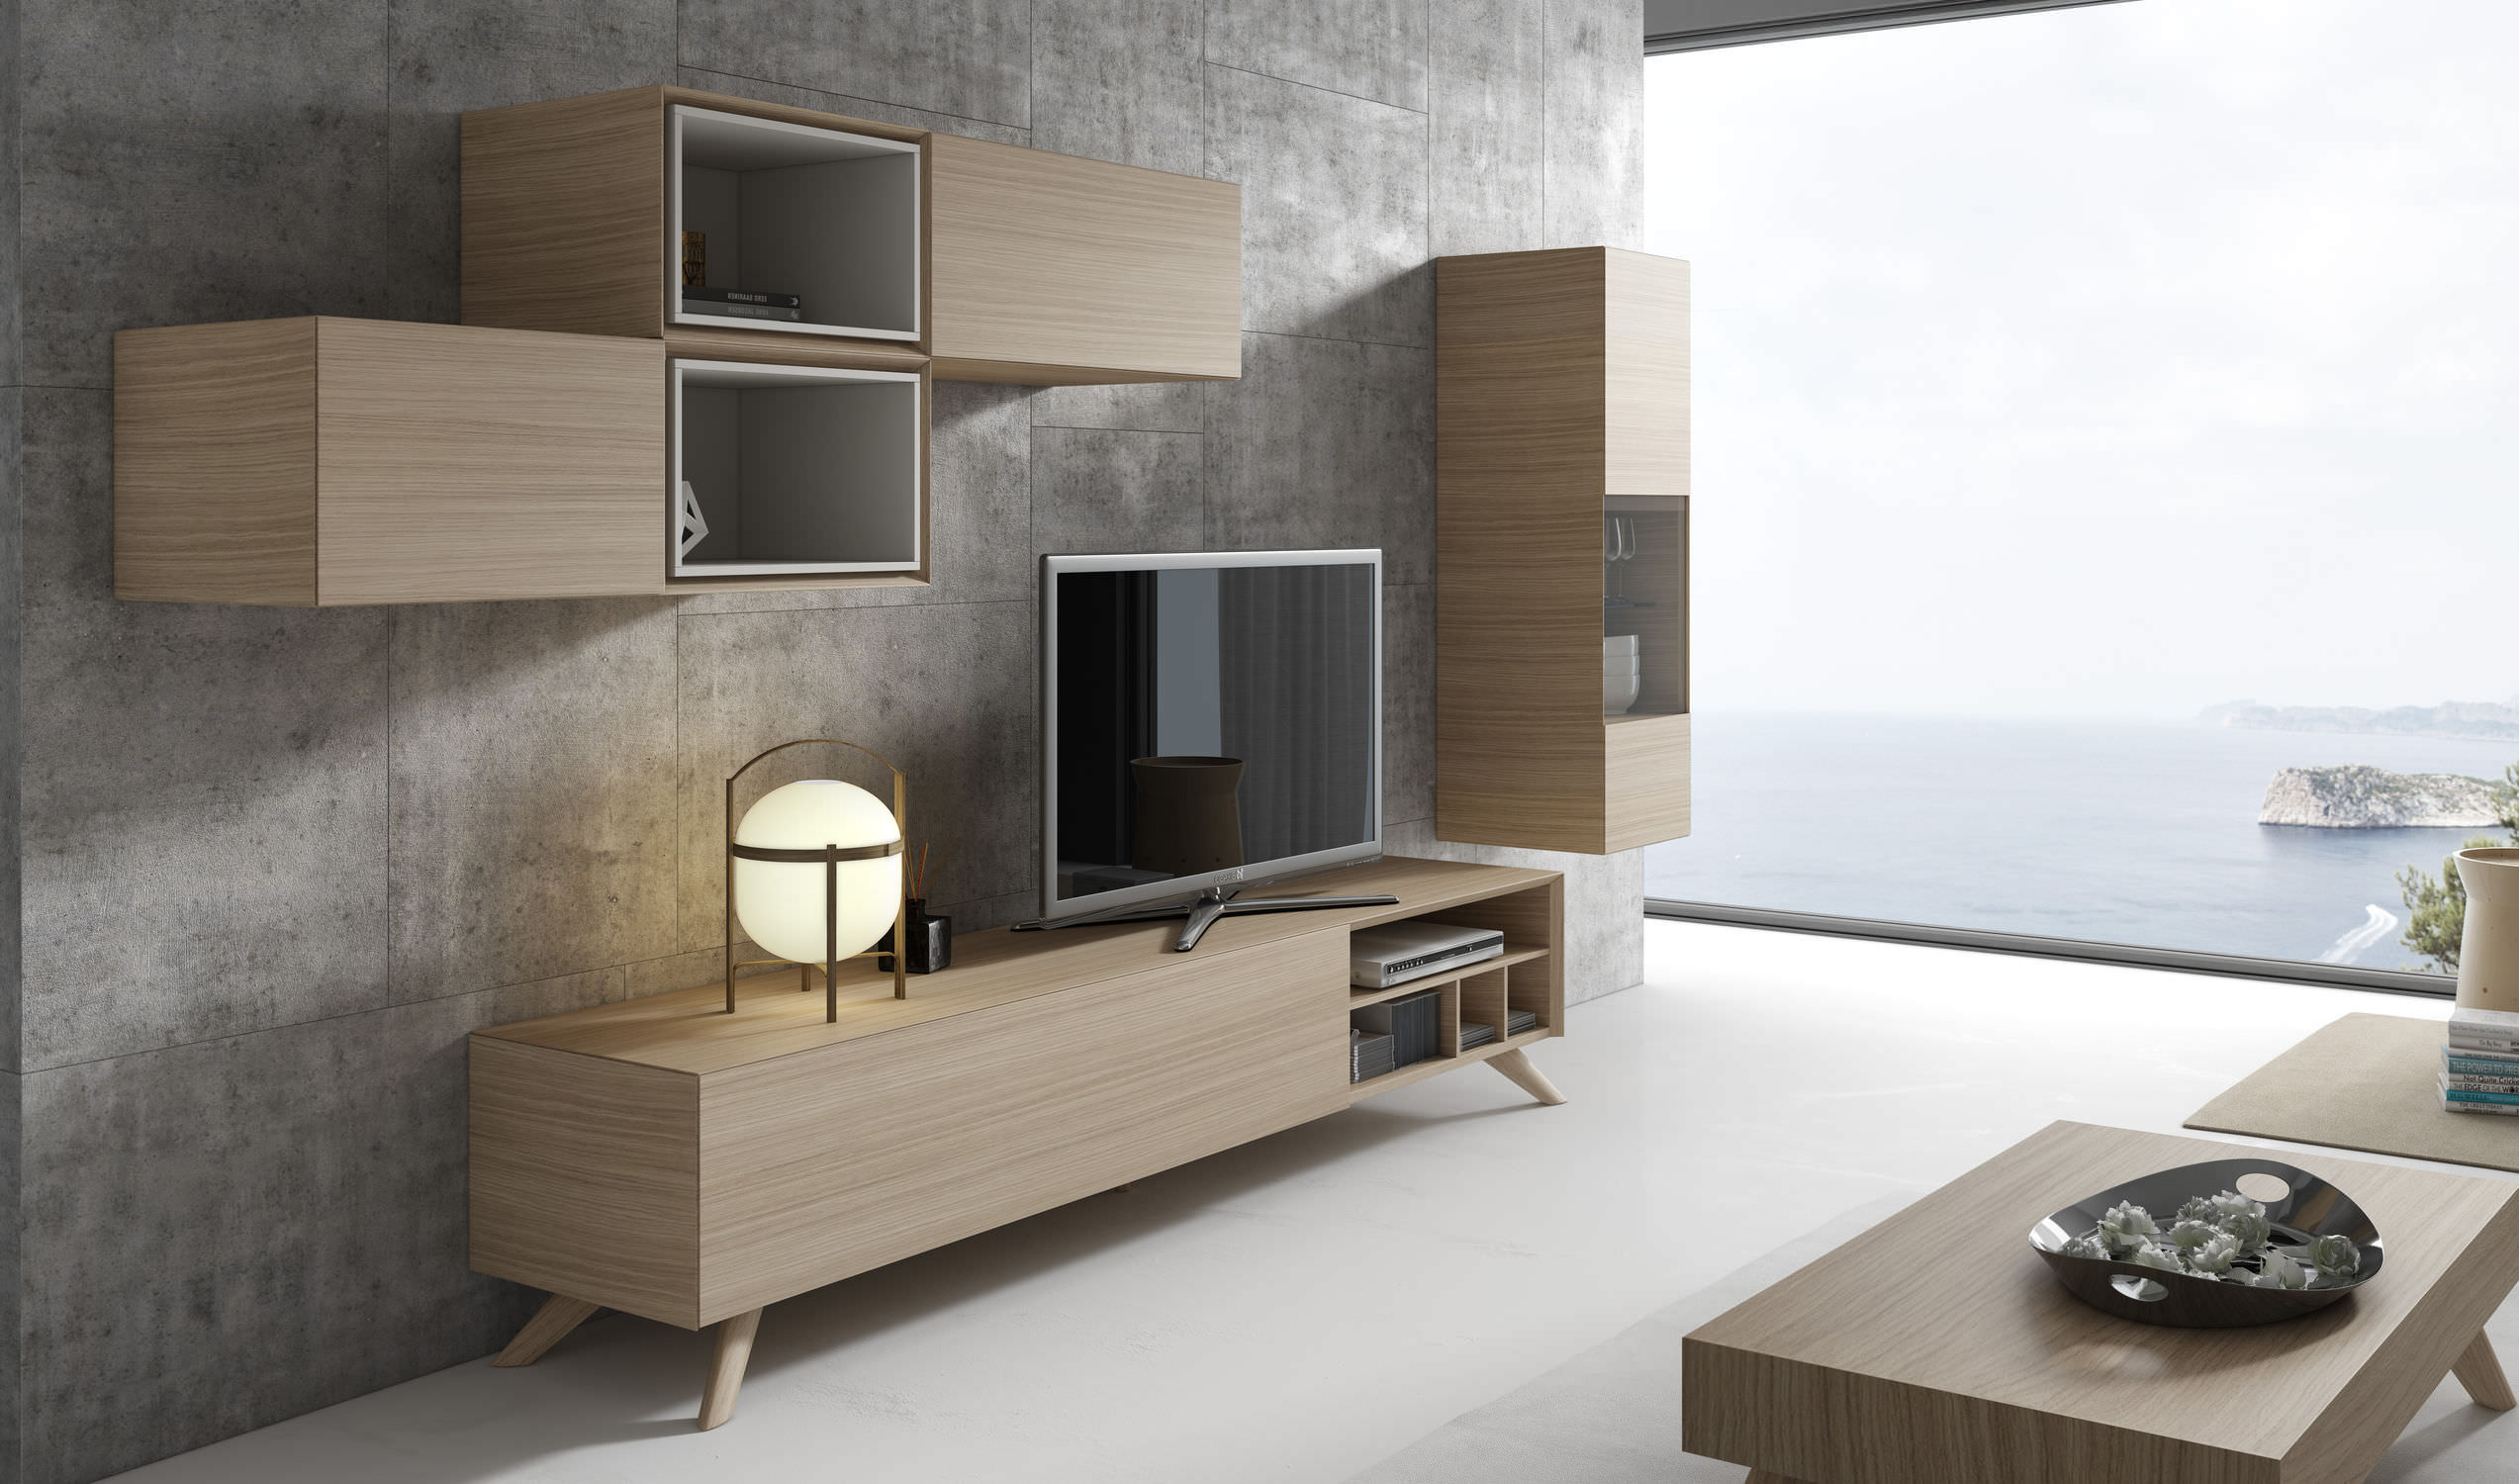 Ensemble Mural Tv Contemporain En Bois Ginza 309 A Brito # Meuble Tv Contemporain Design